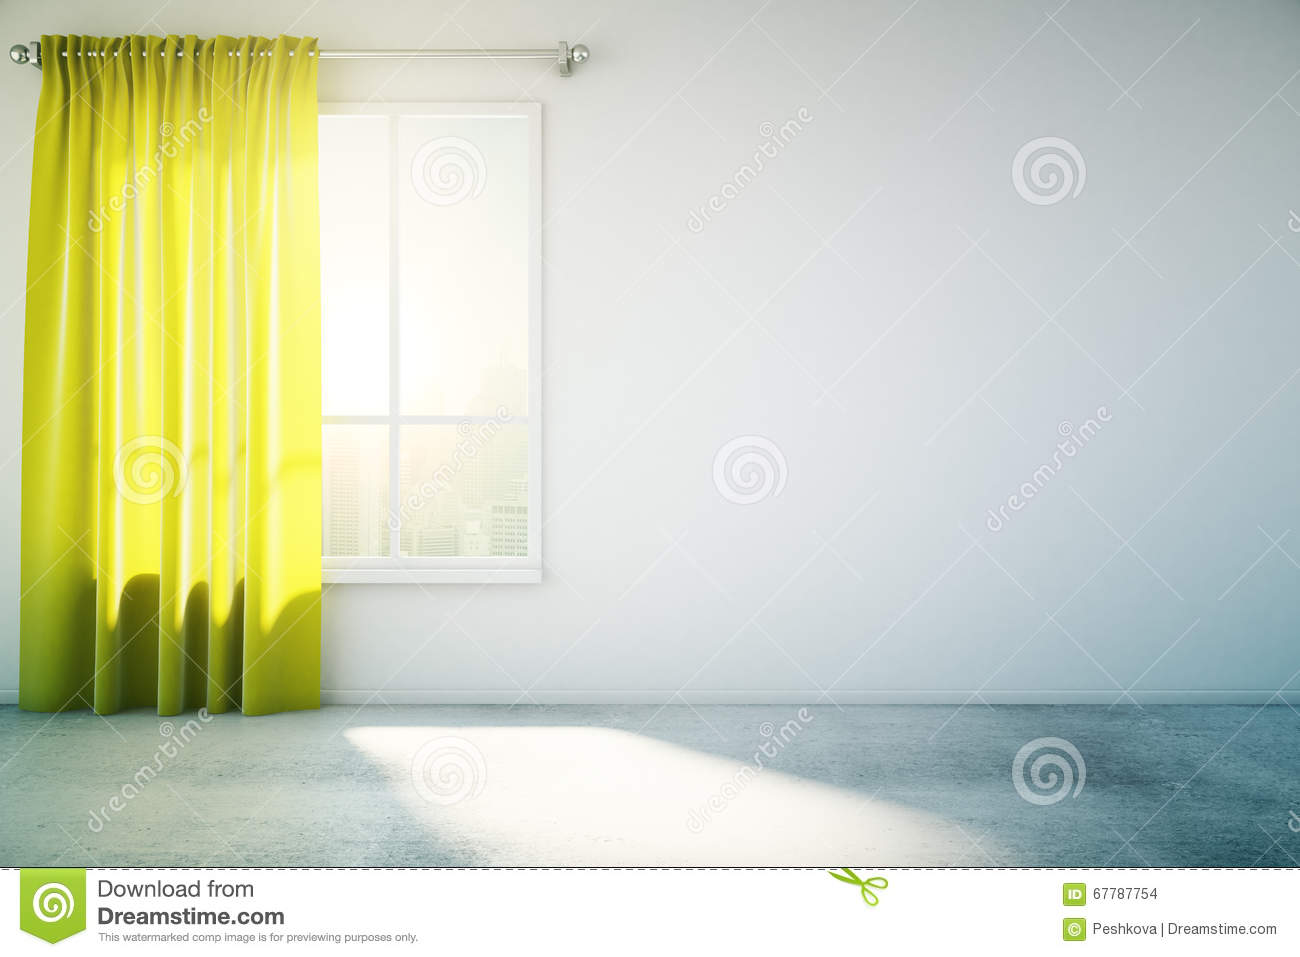 rideau blanc vide en jaune de mur illustration stock image 67787754. Black Bedroom Furniture Sets. Home Design Ideas